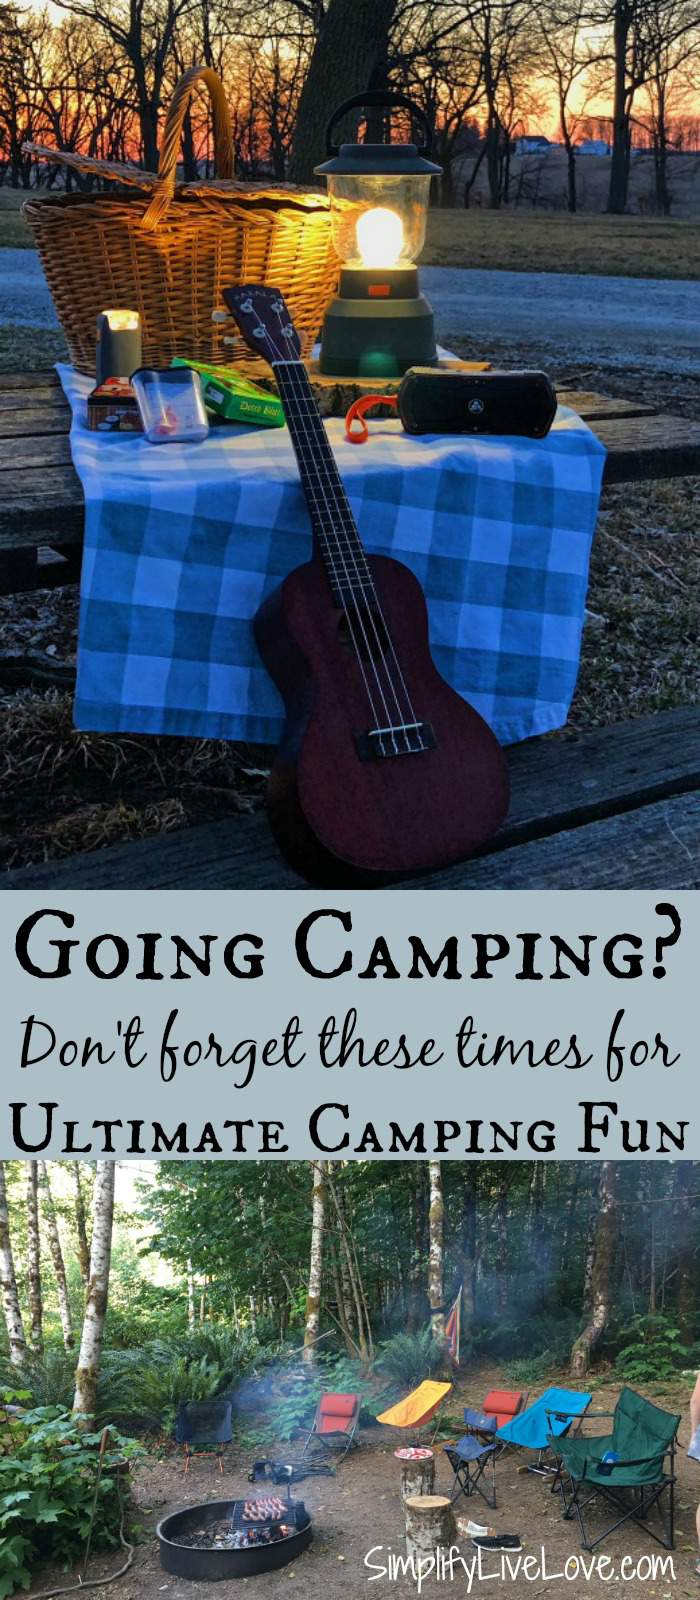 Must have items for fun camping trips